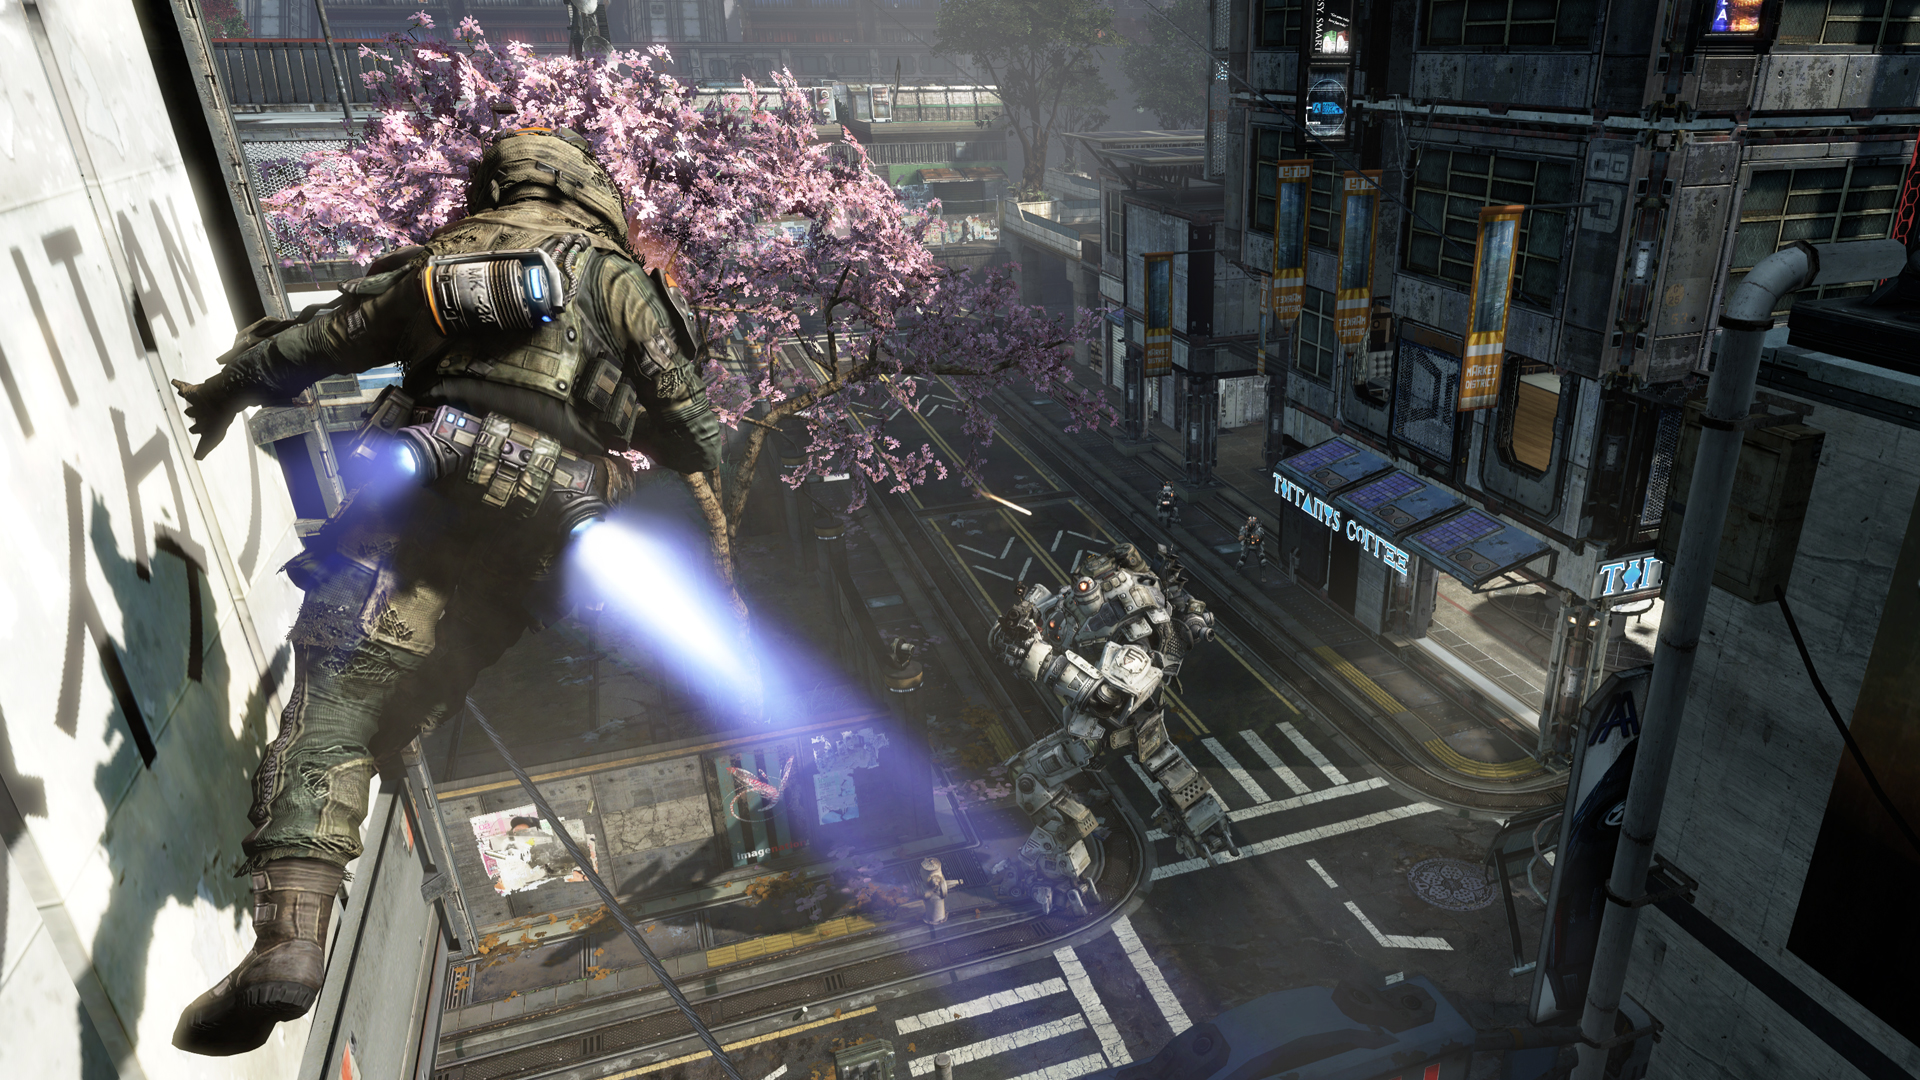 <em>Titanfall</em> may not have propelled the Xbox One into a sales lead, but it undoubtedly sold a lot of systems.